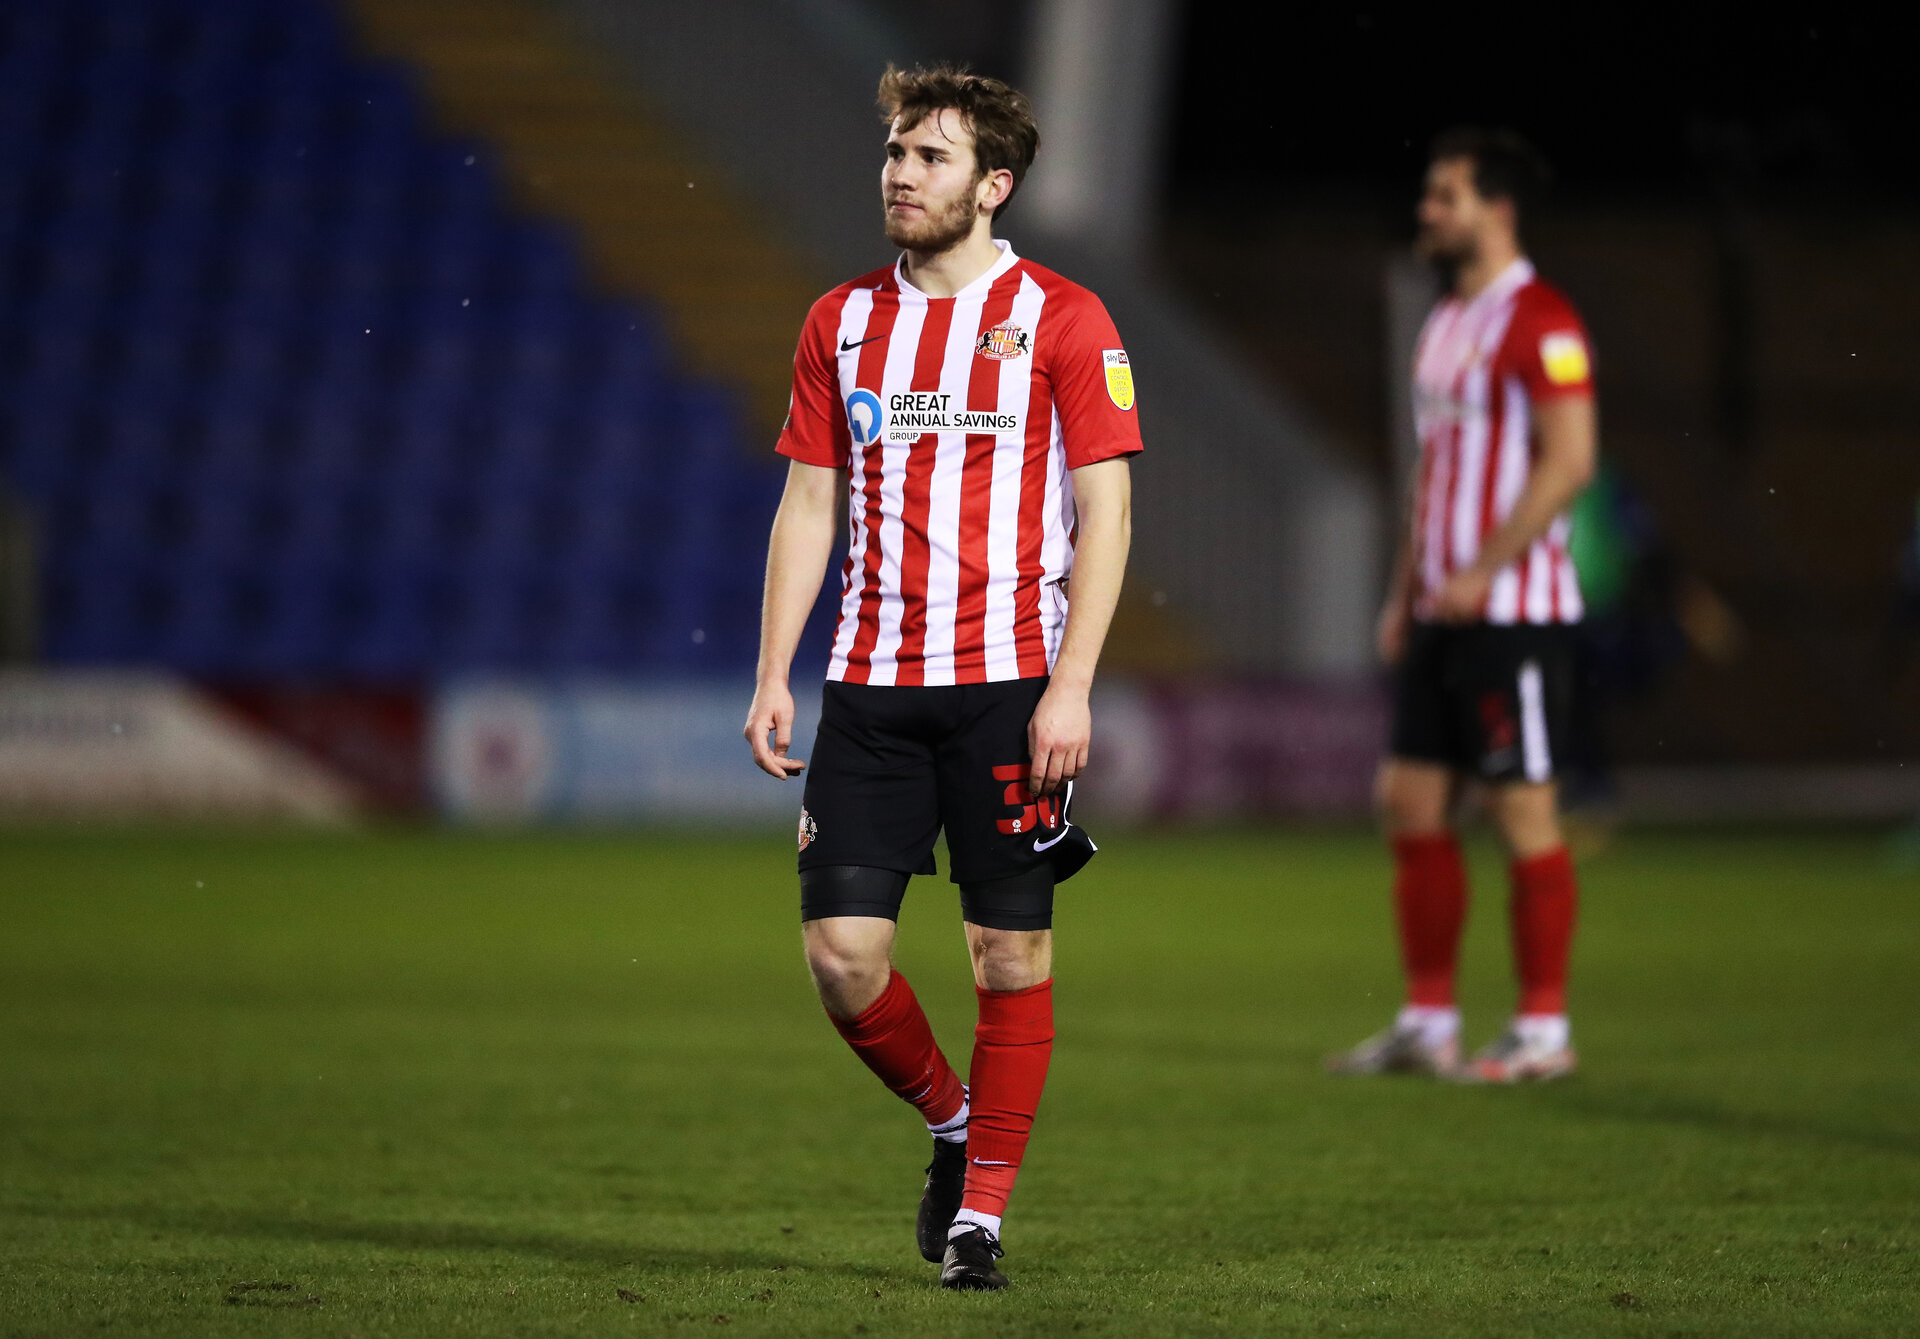 SHREWSBURY, ENGLAND - FEBRUARY 09: Jake Vokins of Sunderland reacts during the Sky Bet League One match between Shrewsbury Town and Sunderland at Montgomery Waters Meadow on February 09, 2021 in Shrewsbury, England. Sporting stadiums around the UK remain under strict restrictions due to the Coronavirus Pandemic as Government social distancing laws prohibit fans inside venues resulting in games being played behind closed doors. (Photo by Naomi Baker/Getty Images)